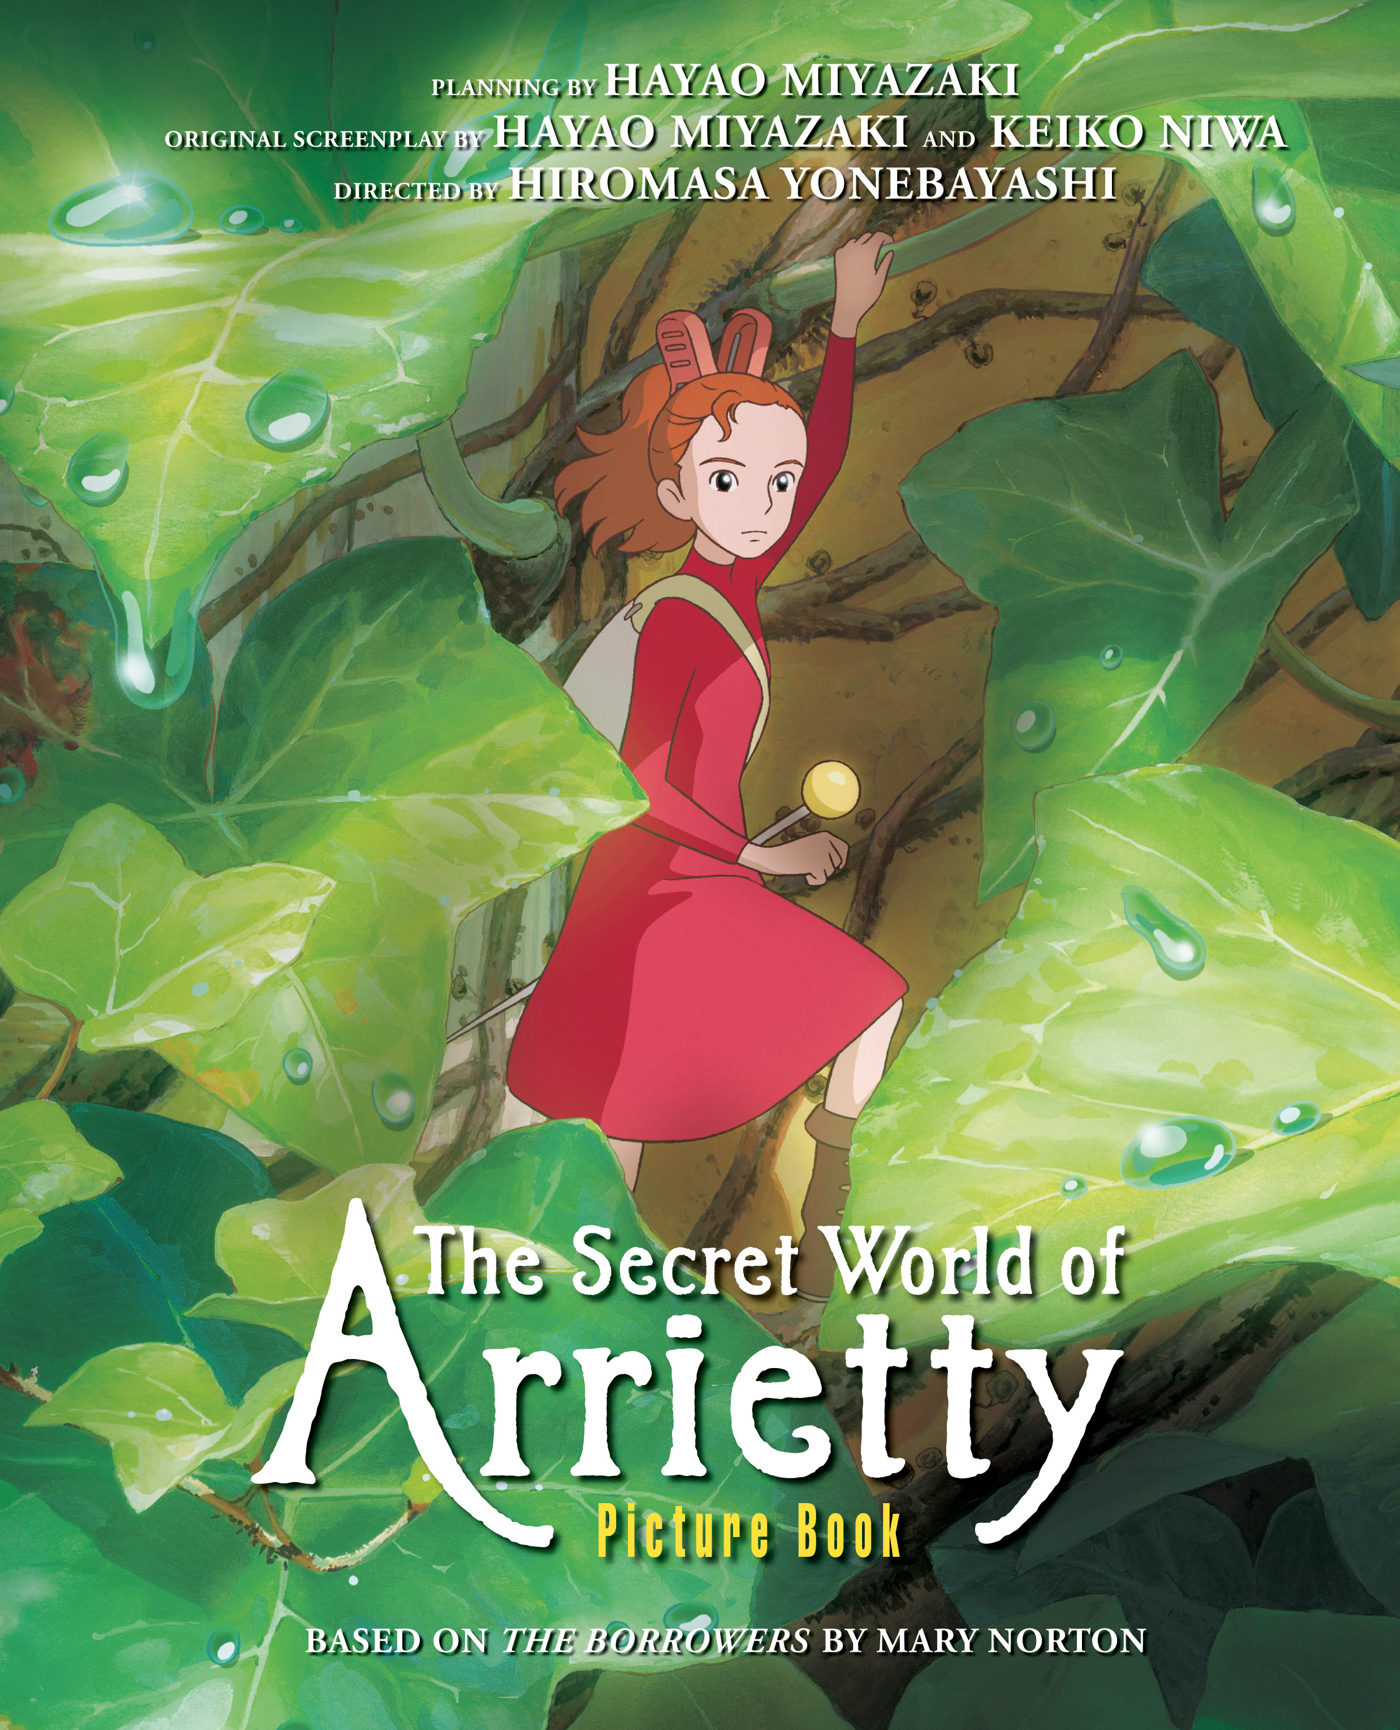 The secret world of arrietty picture book 9781421541150 hr